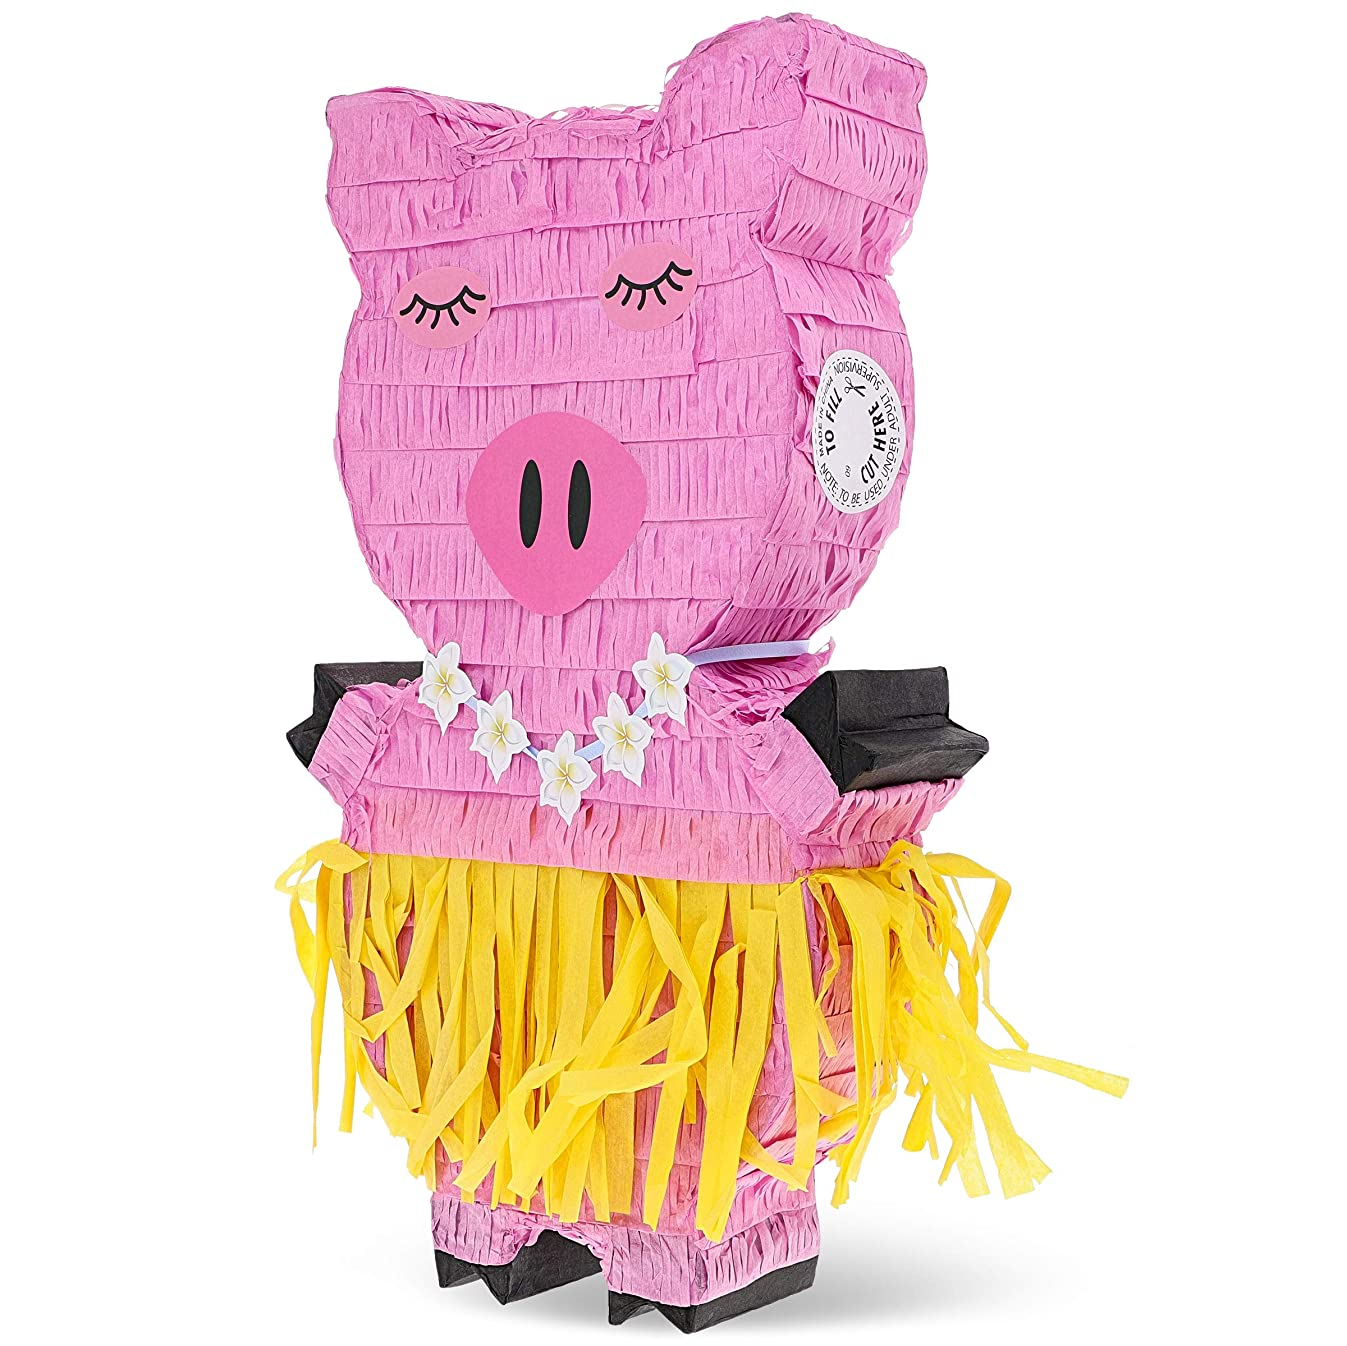 Juvale Hawaiian Luau Pig Party Pinata, Pink/Yellow, 16.5 x 10 x 3 Inches